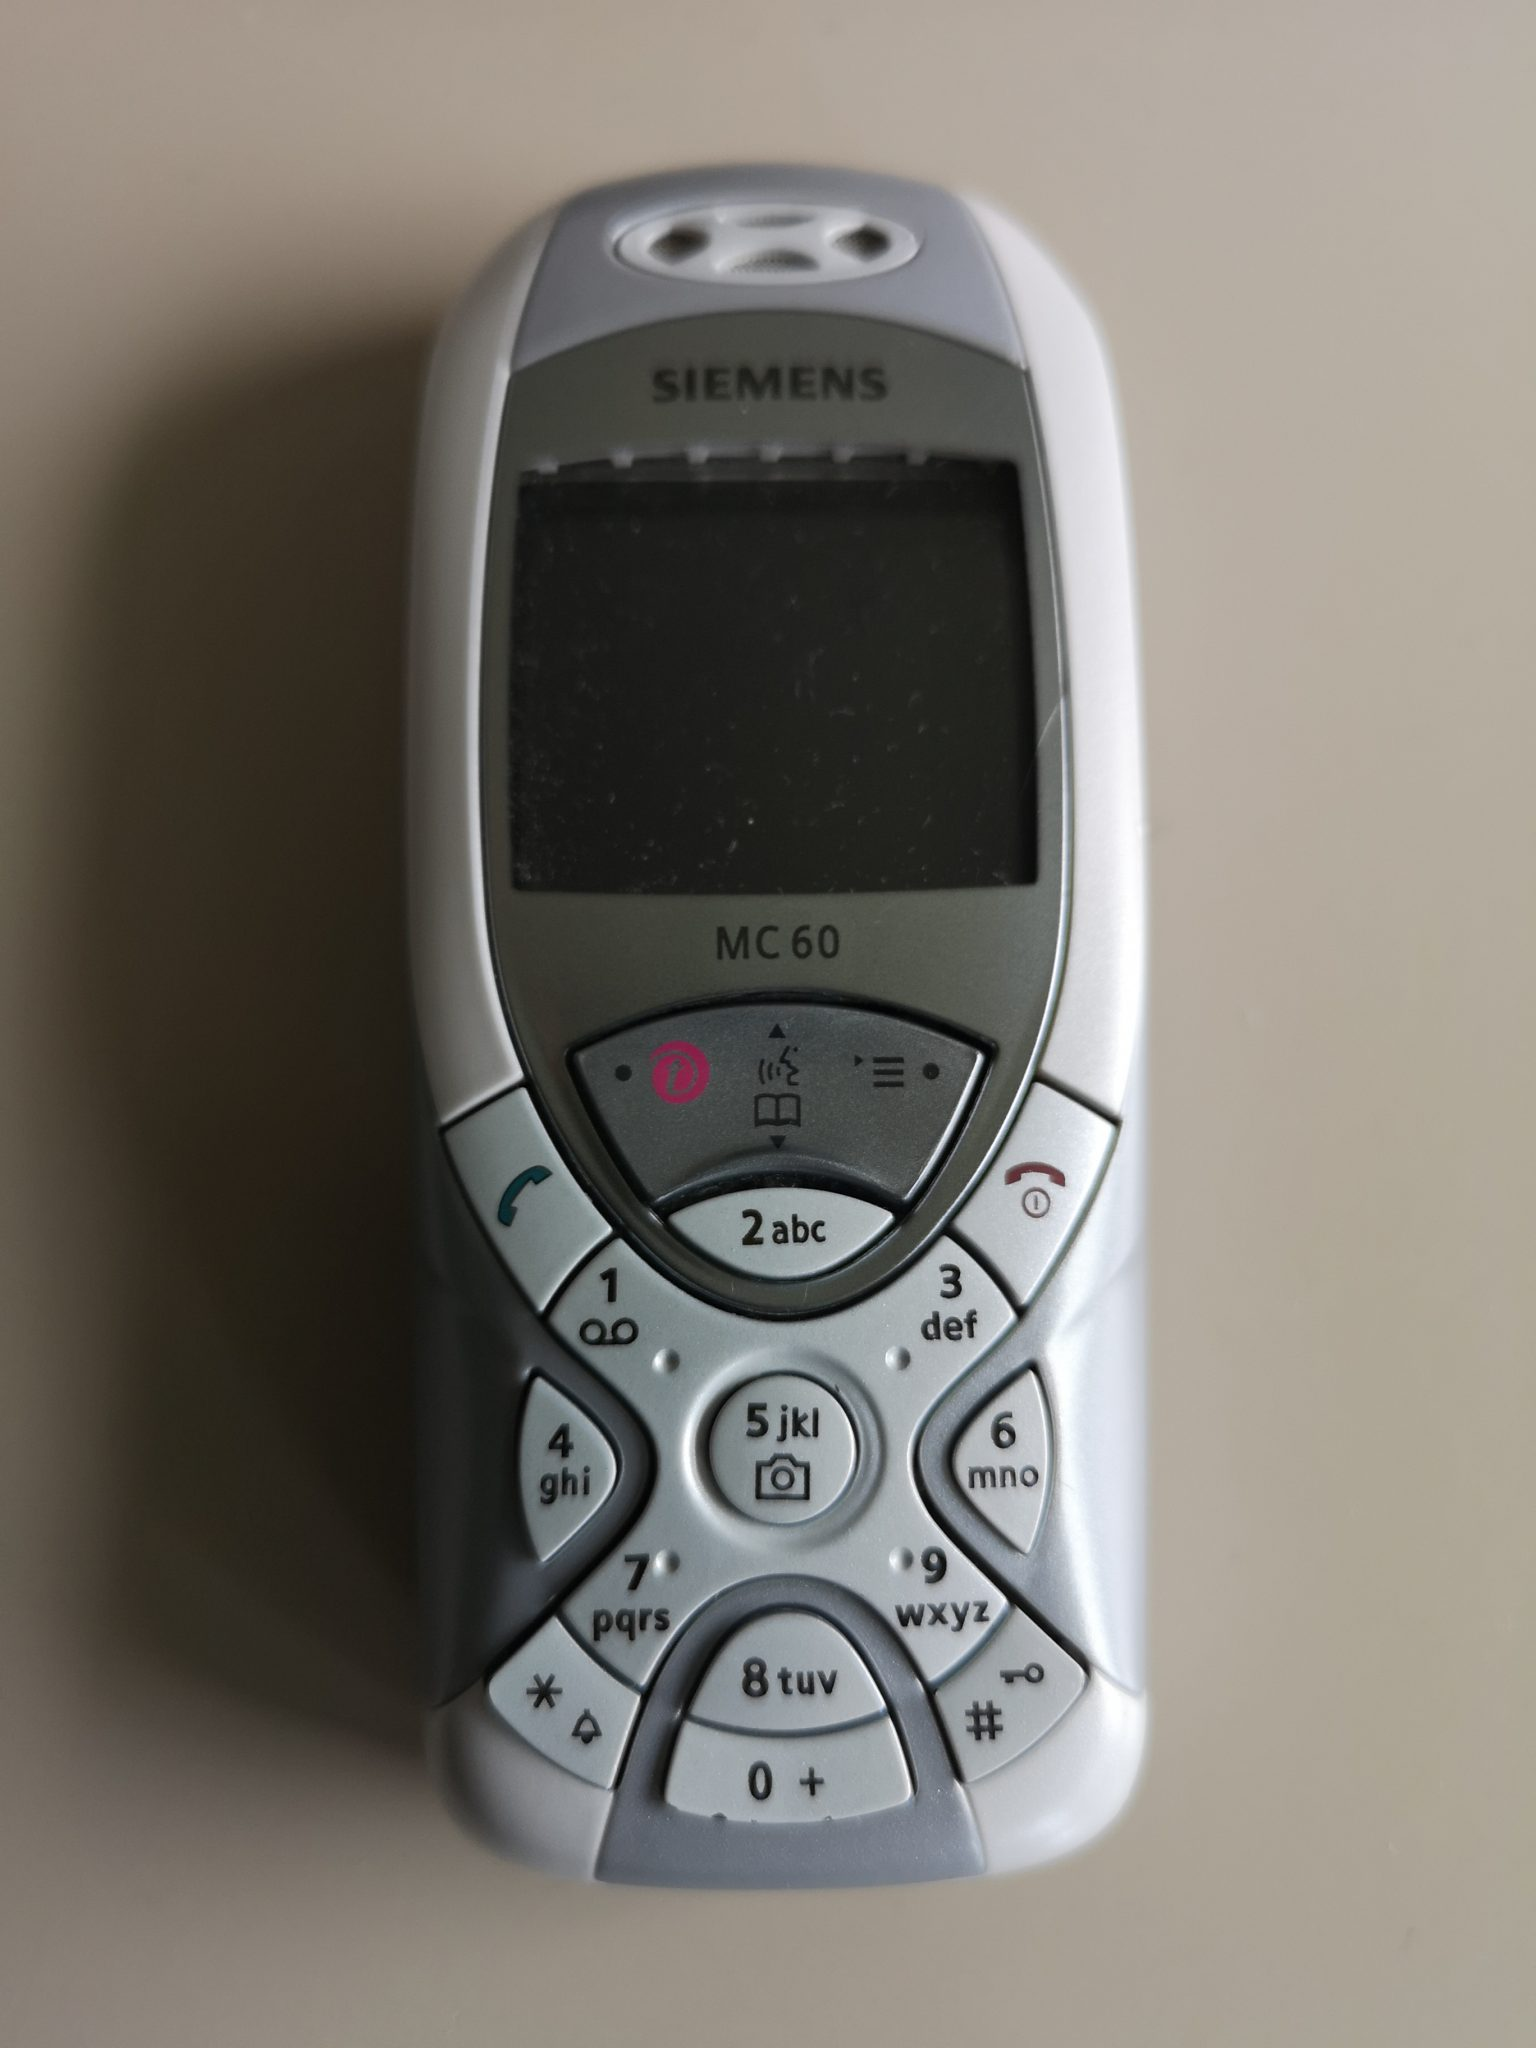 Siemens MC60 Mobile Phone Review - Retro Mobile Phone with Innovative Keypad